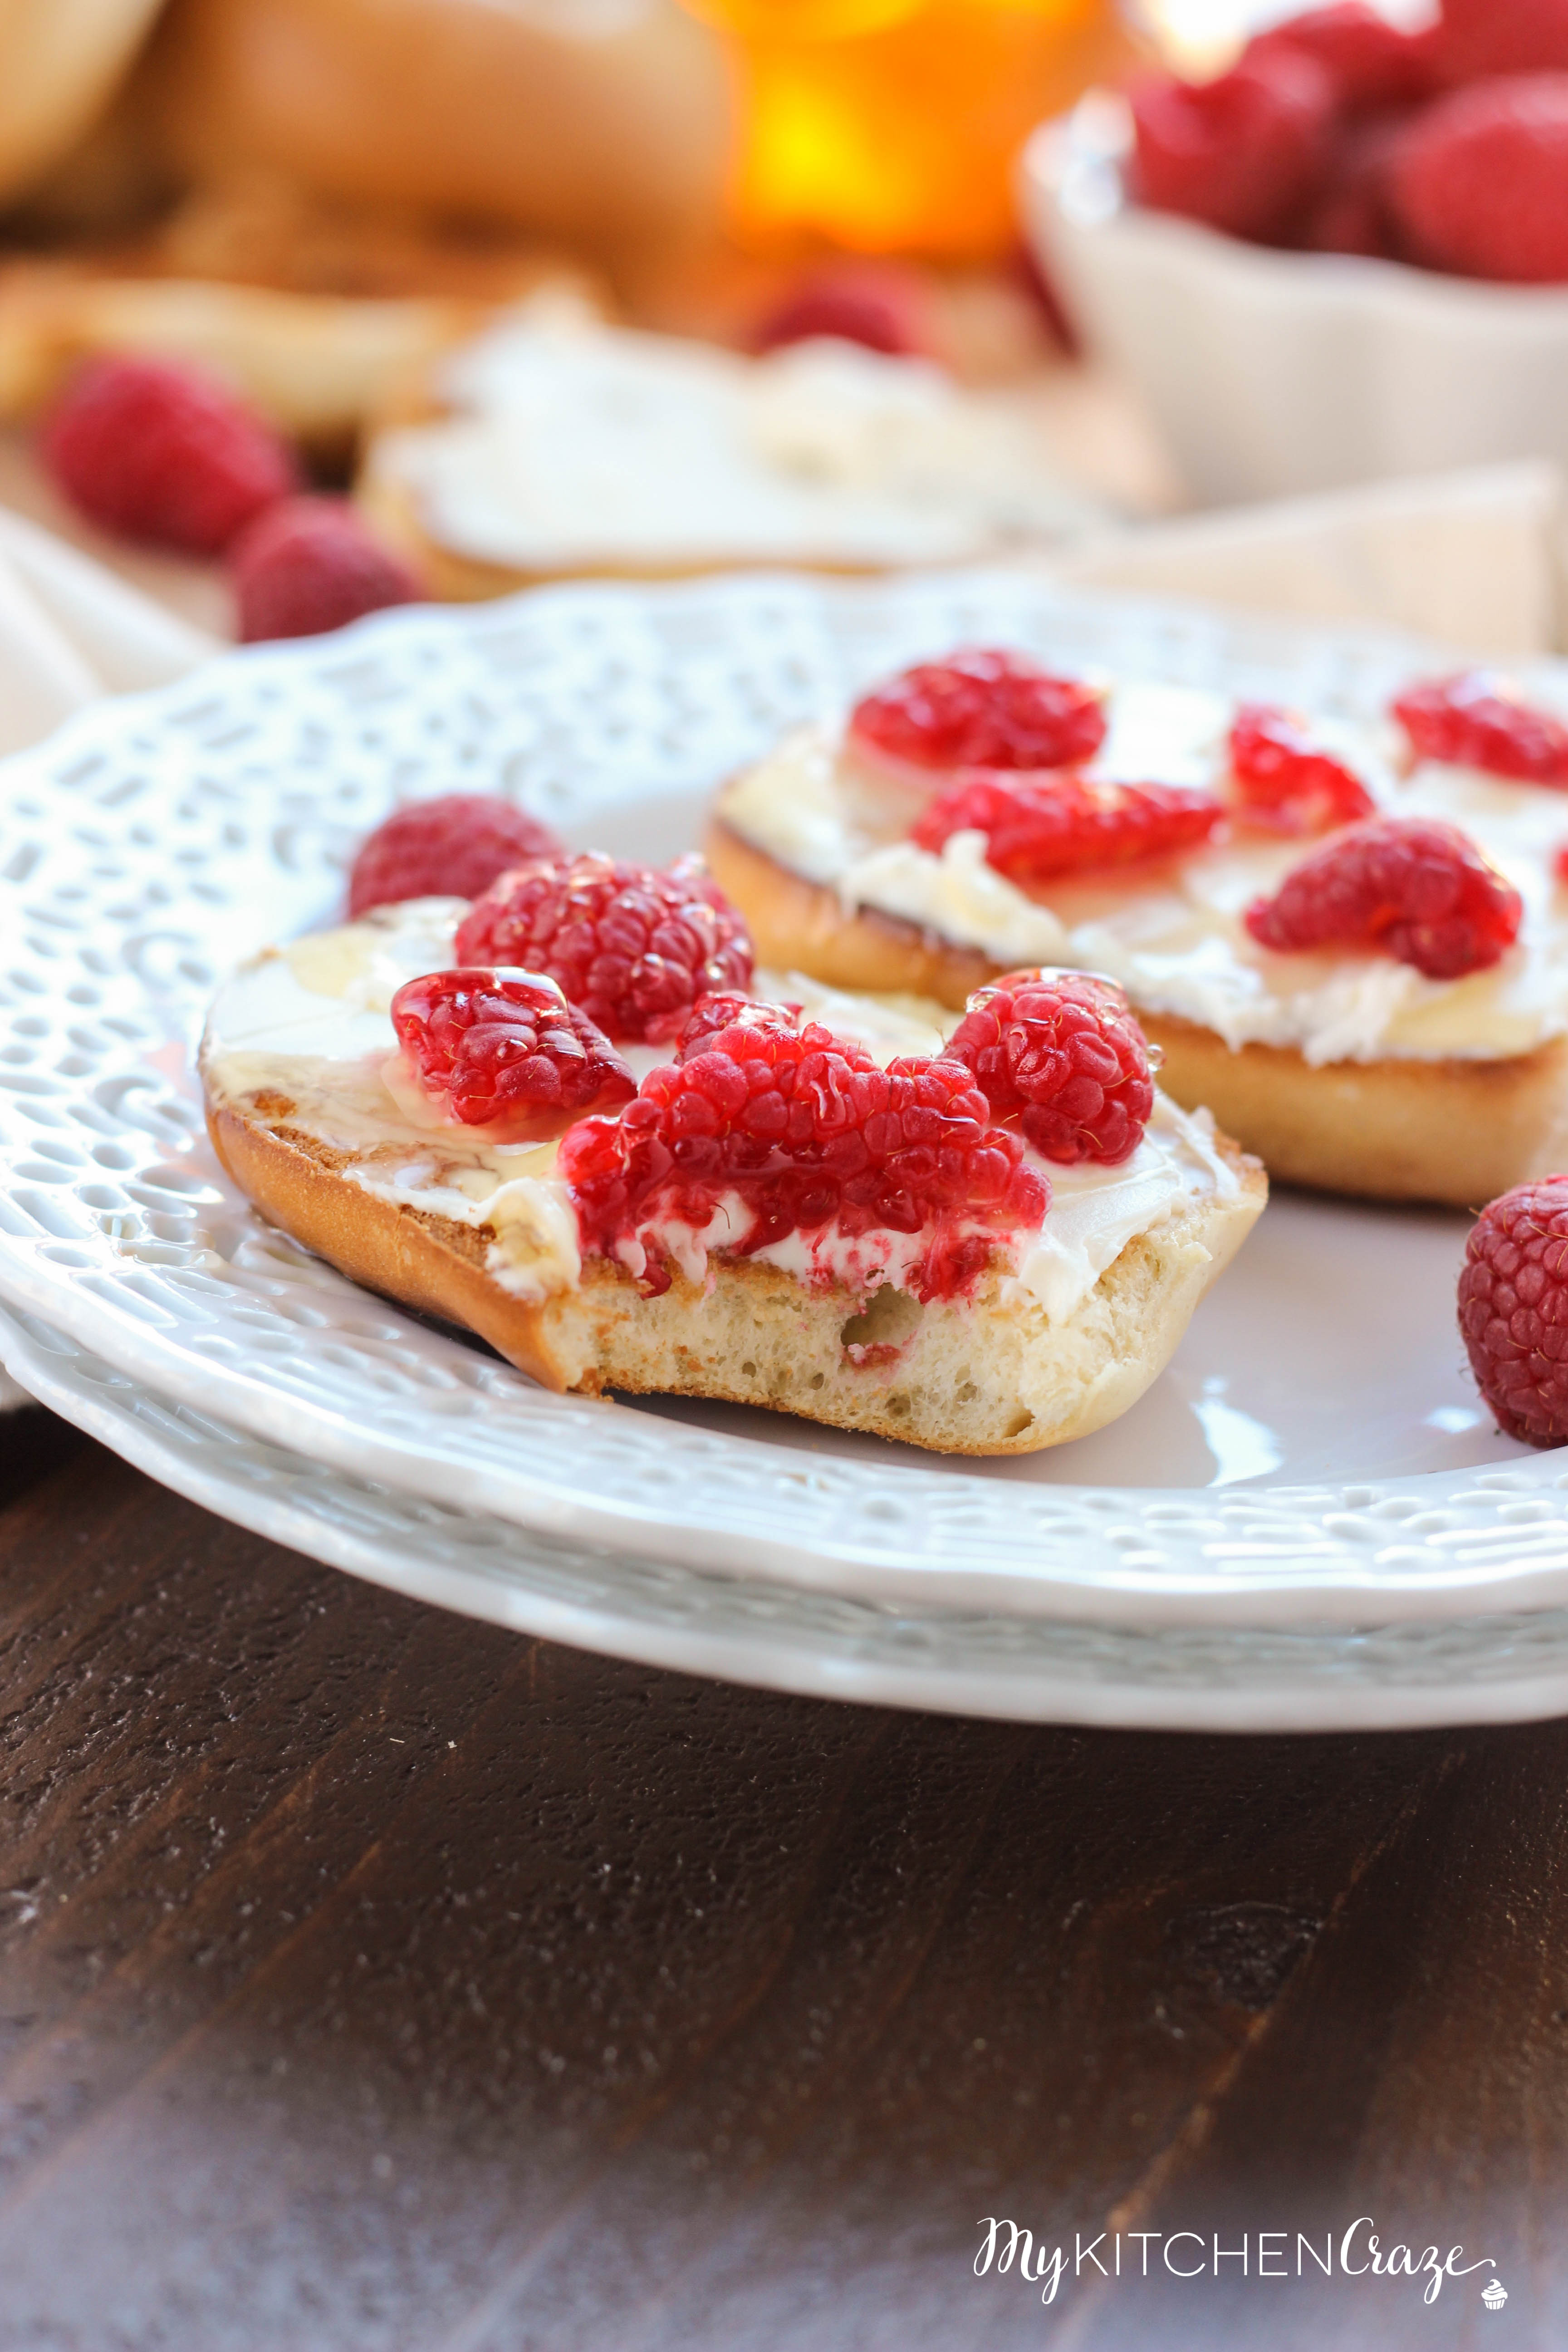 Honey Raspberry Bagels ~ mykitchencraze.com ~ Enjoy these easy 4 ingredient bagels for a quick breakfast or dessert. Loaded with mascarpone cheese, raspberries and honey. These bagels will be gone before you know it.